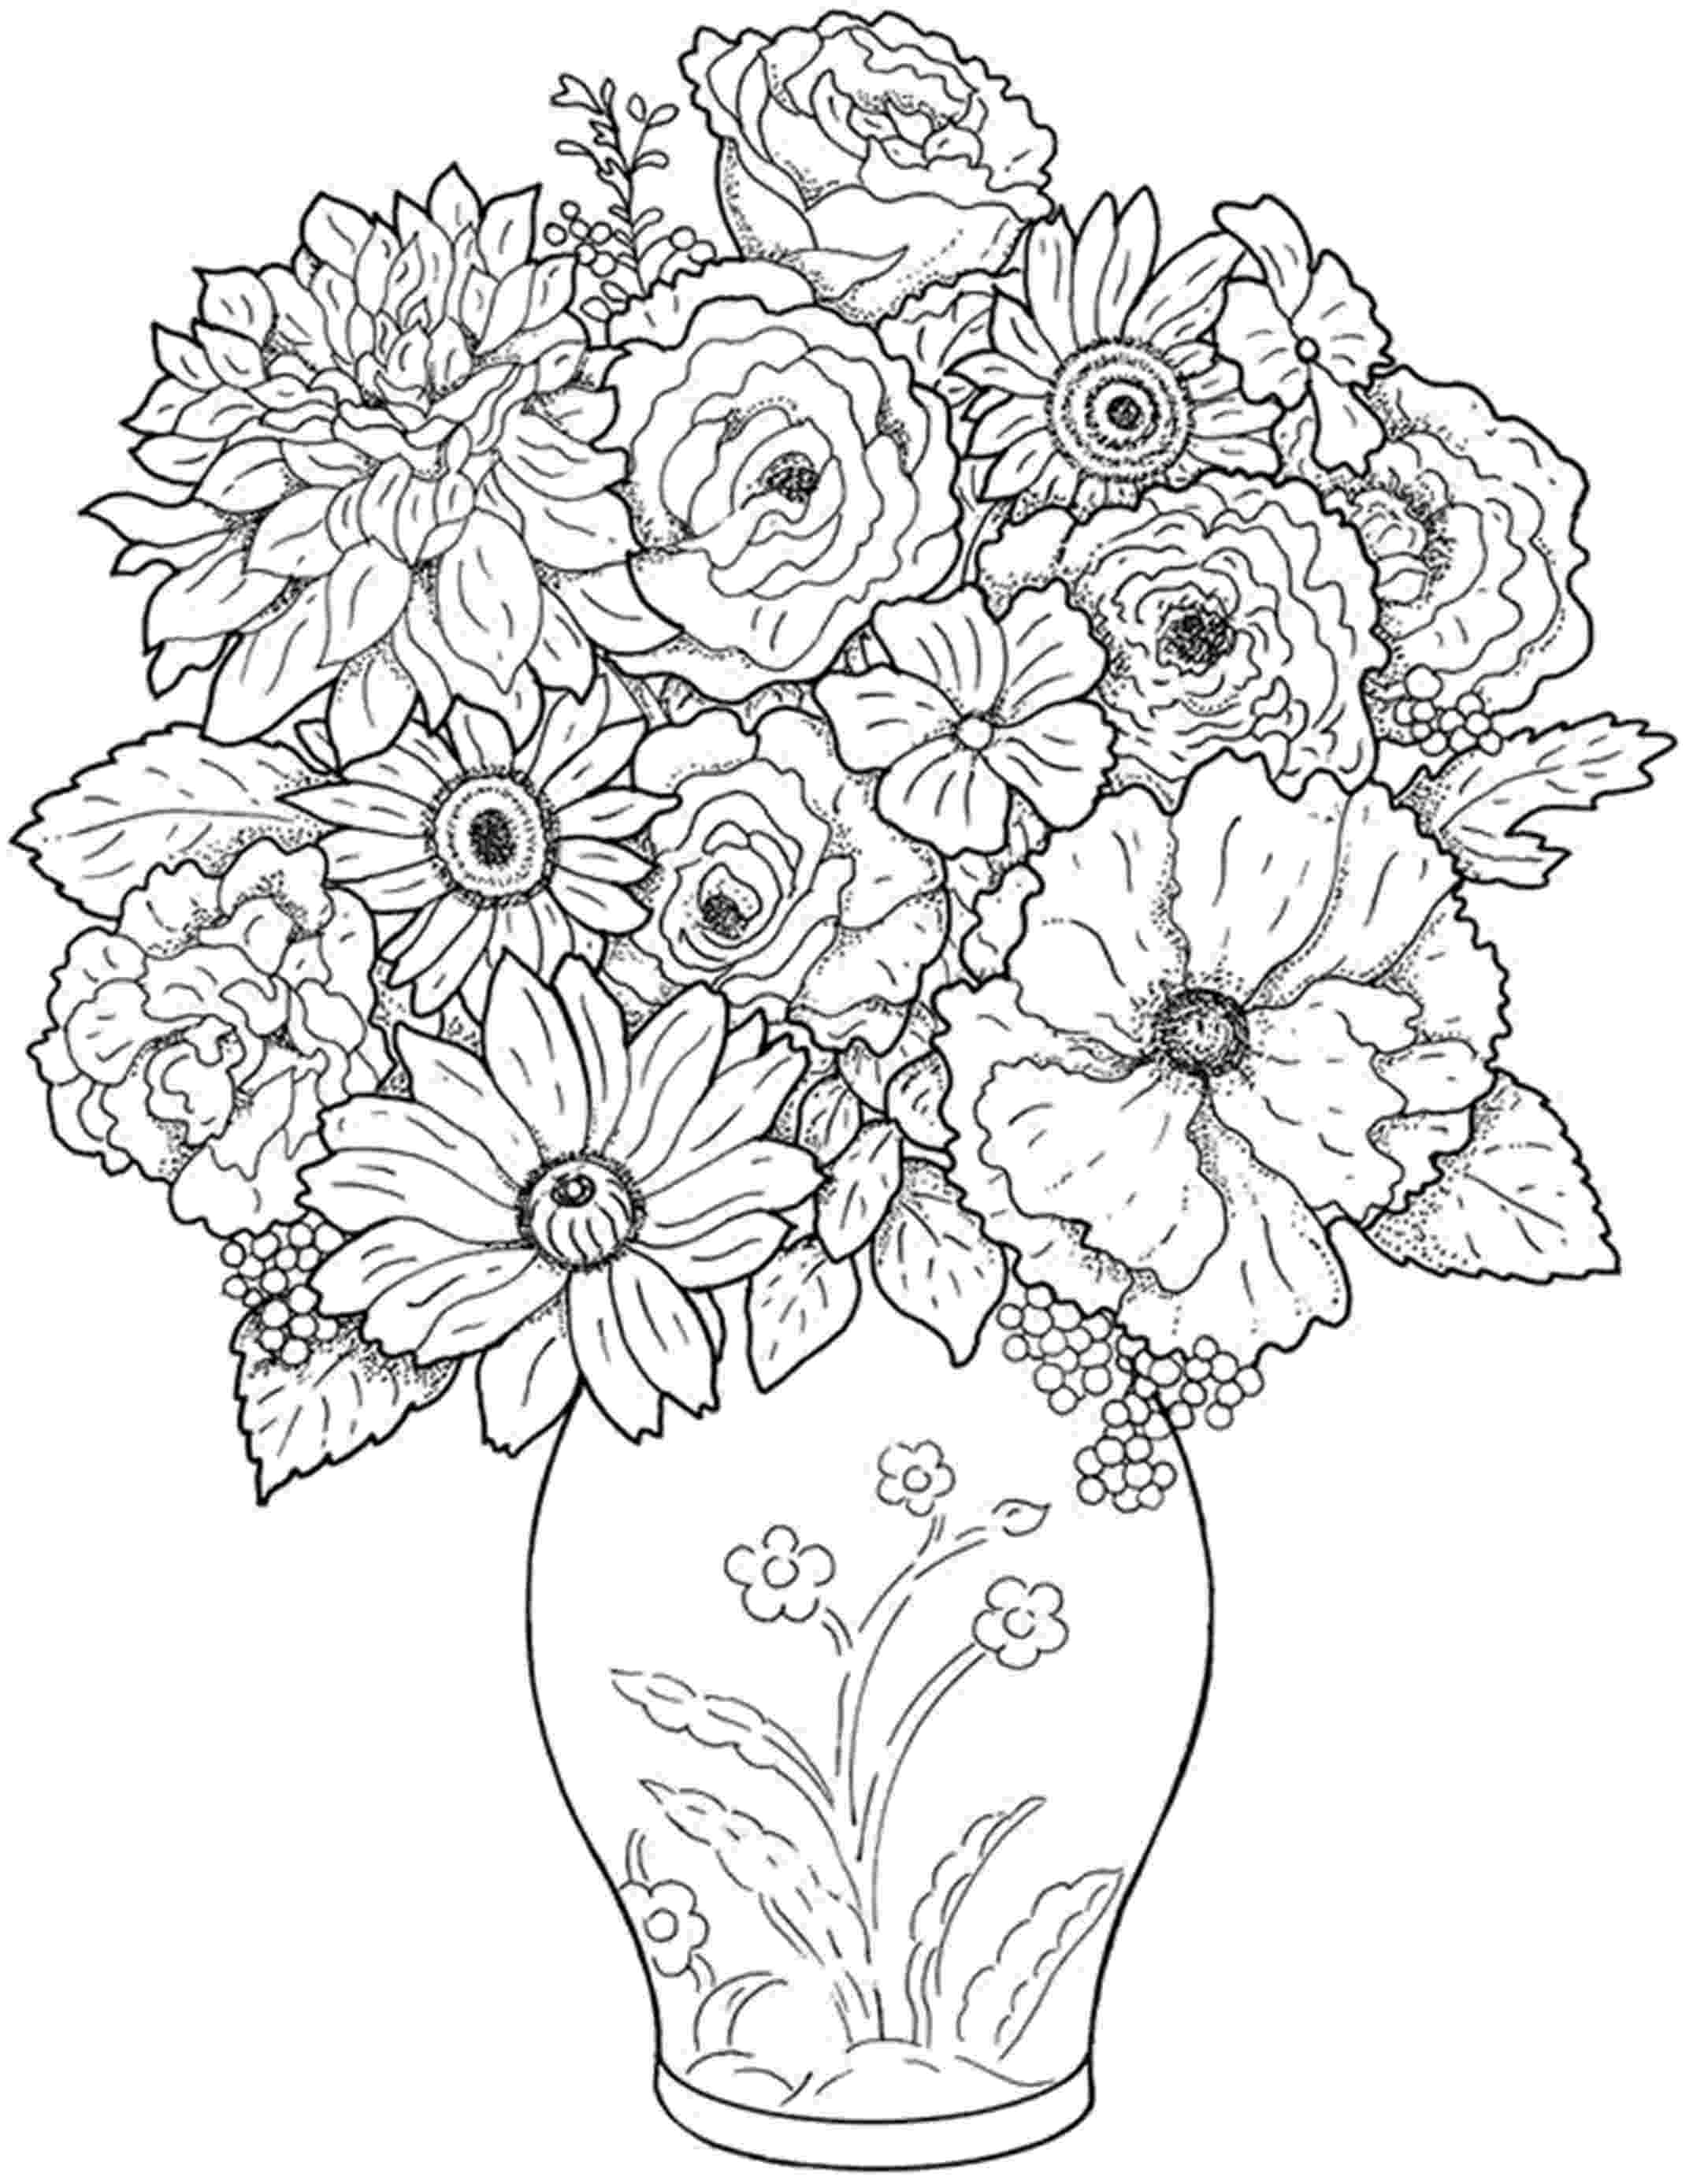 colouring pages for flowers spring flower coloring pages to download and print for free pages flowers for colouring